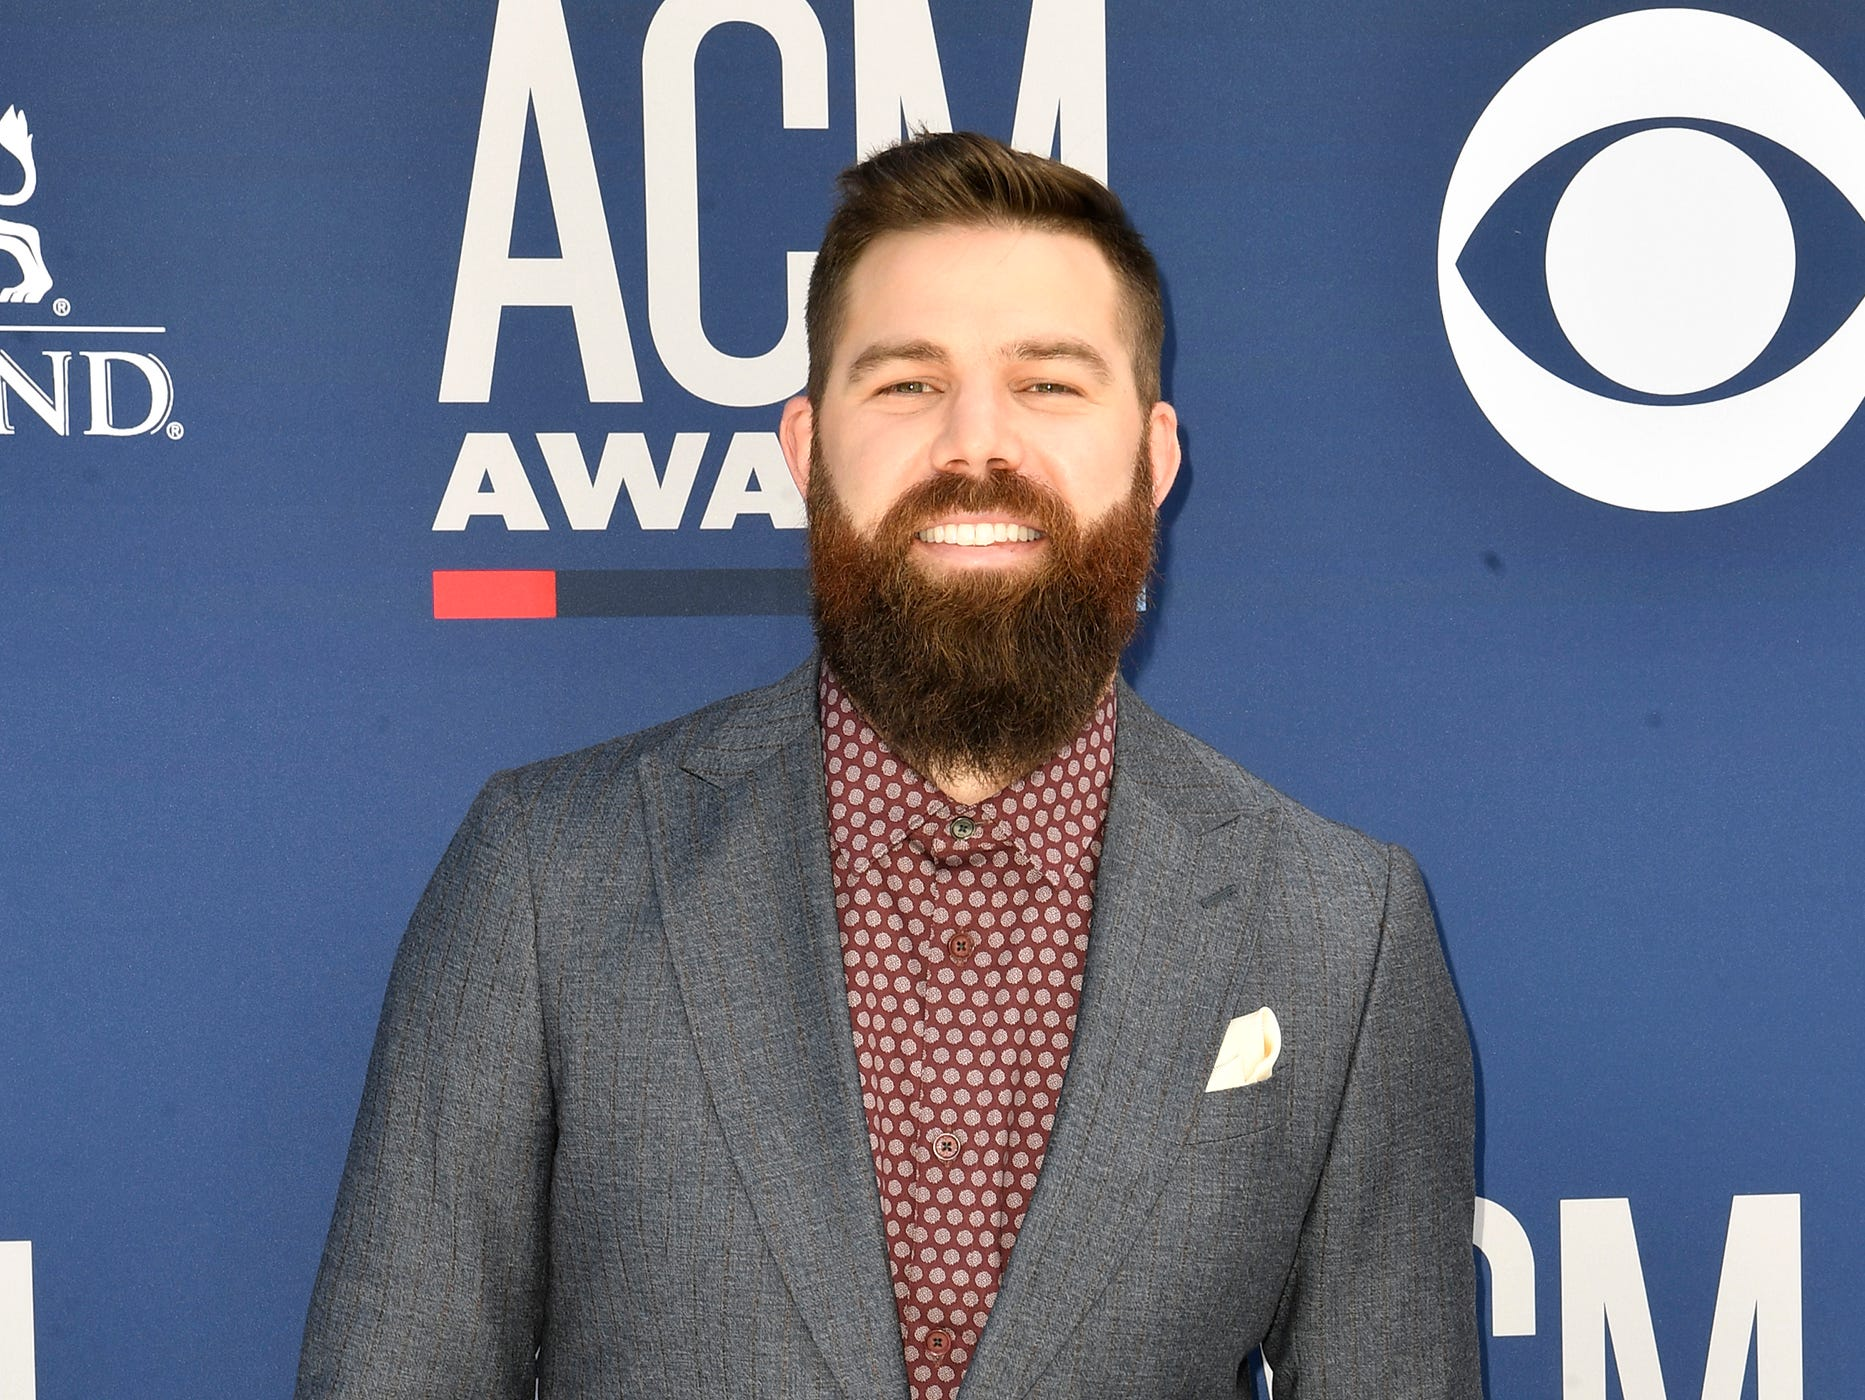 Jordan Davis walks the red carpet at the 54TH Academy of Country Music Awards Sunday, April 7, 2019, in Las Vegas, Nev.